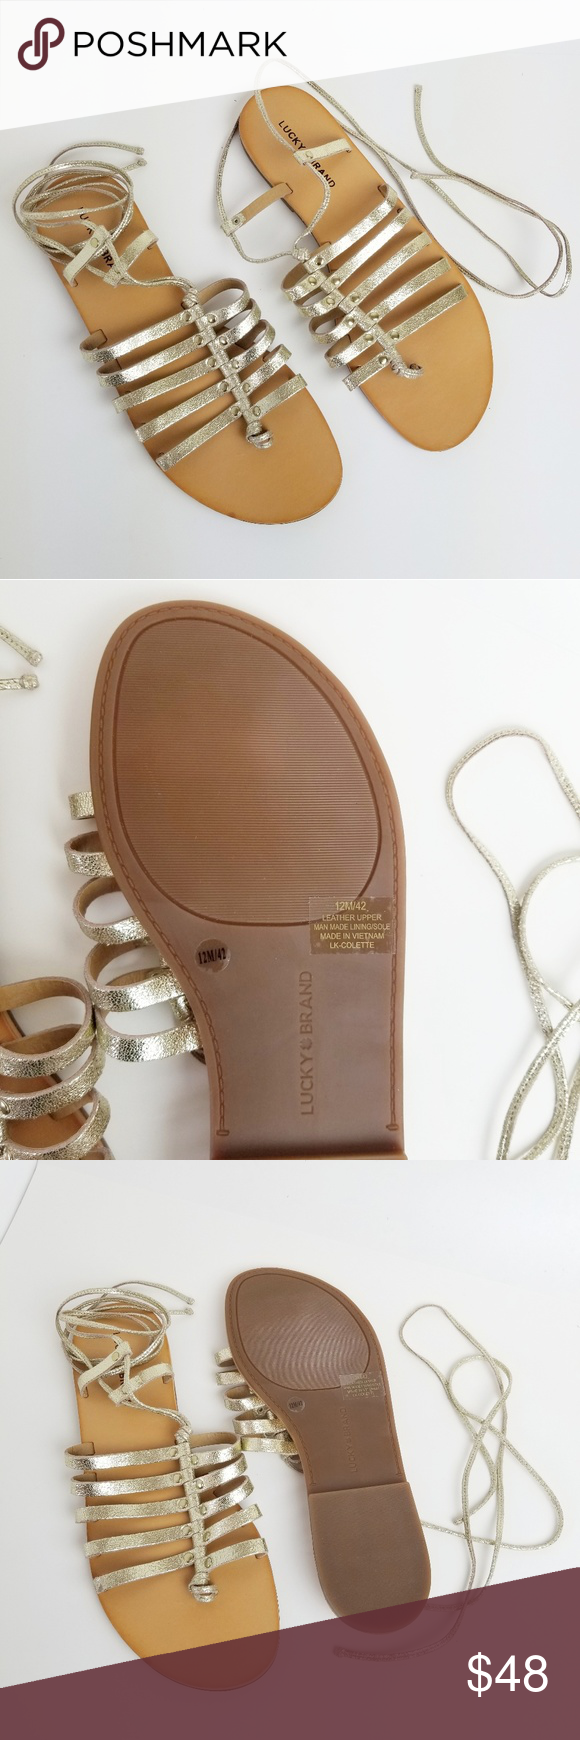 6ab978e50028 Lucky Brand LK-Colette gladiator gold sandals 12 Gold gladiator sandal in  size 12M Leather